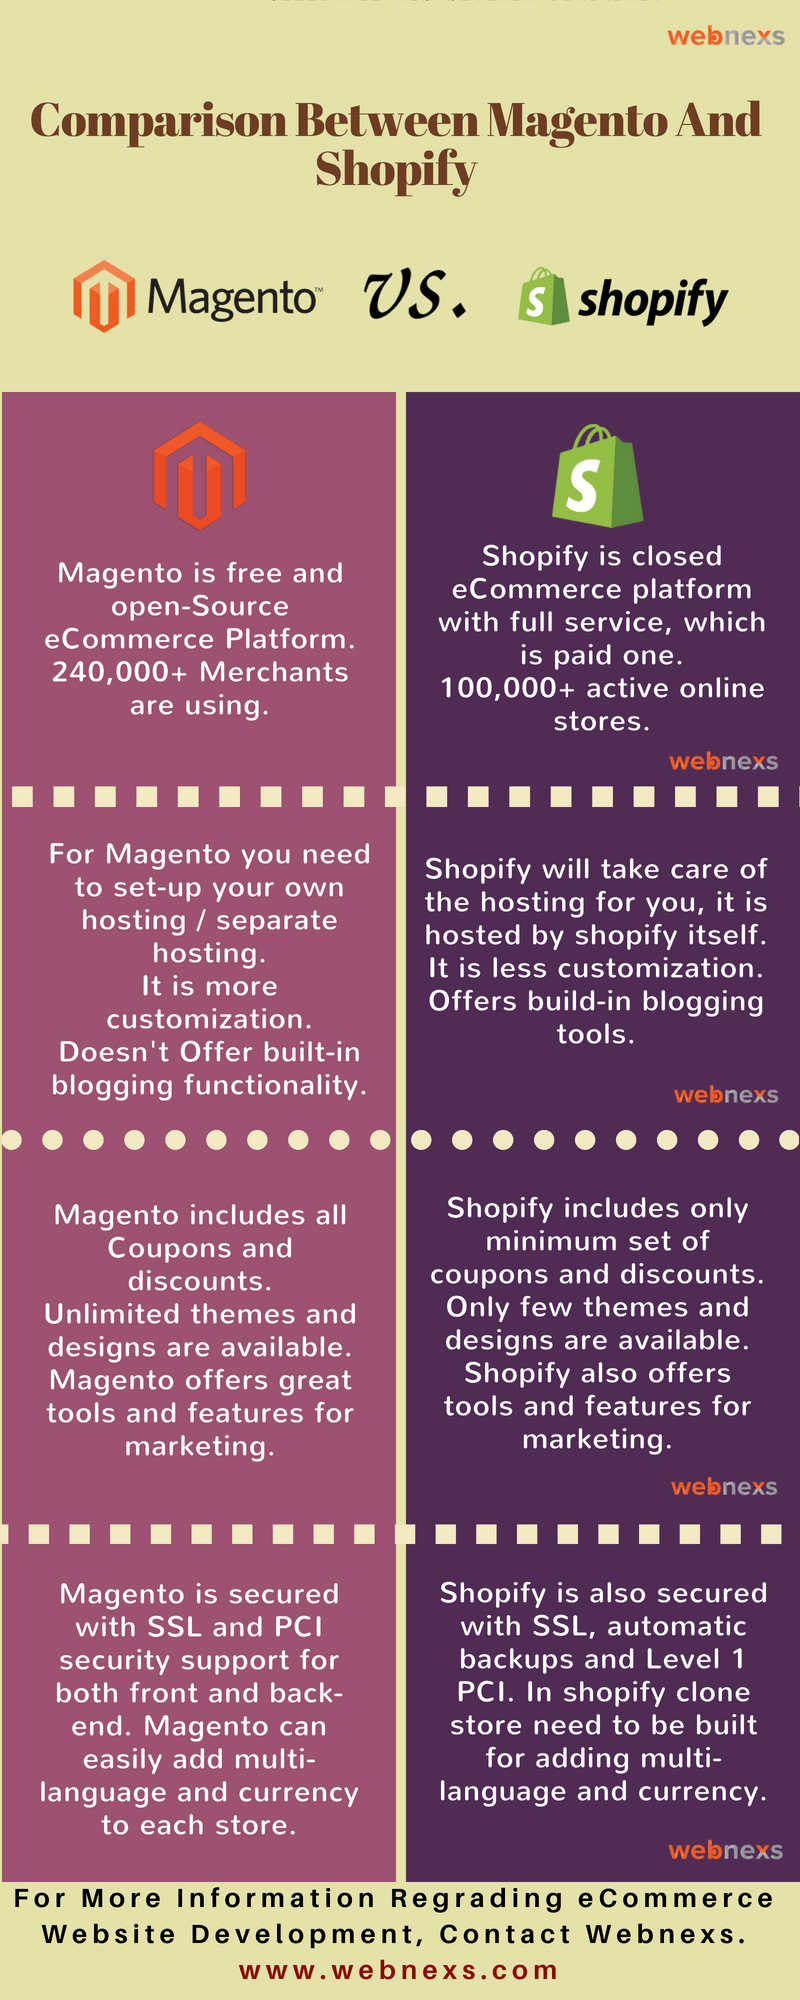 MAGENTO 2 AND SHOPIFY: AN EXTENSIVE COMPARISON